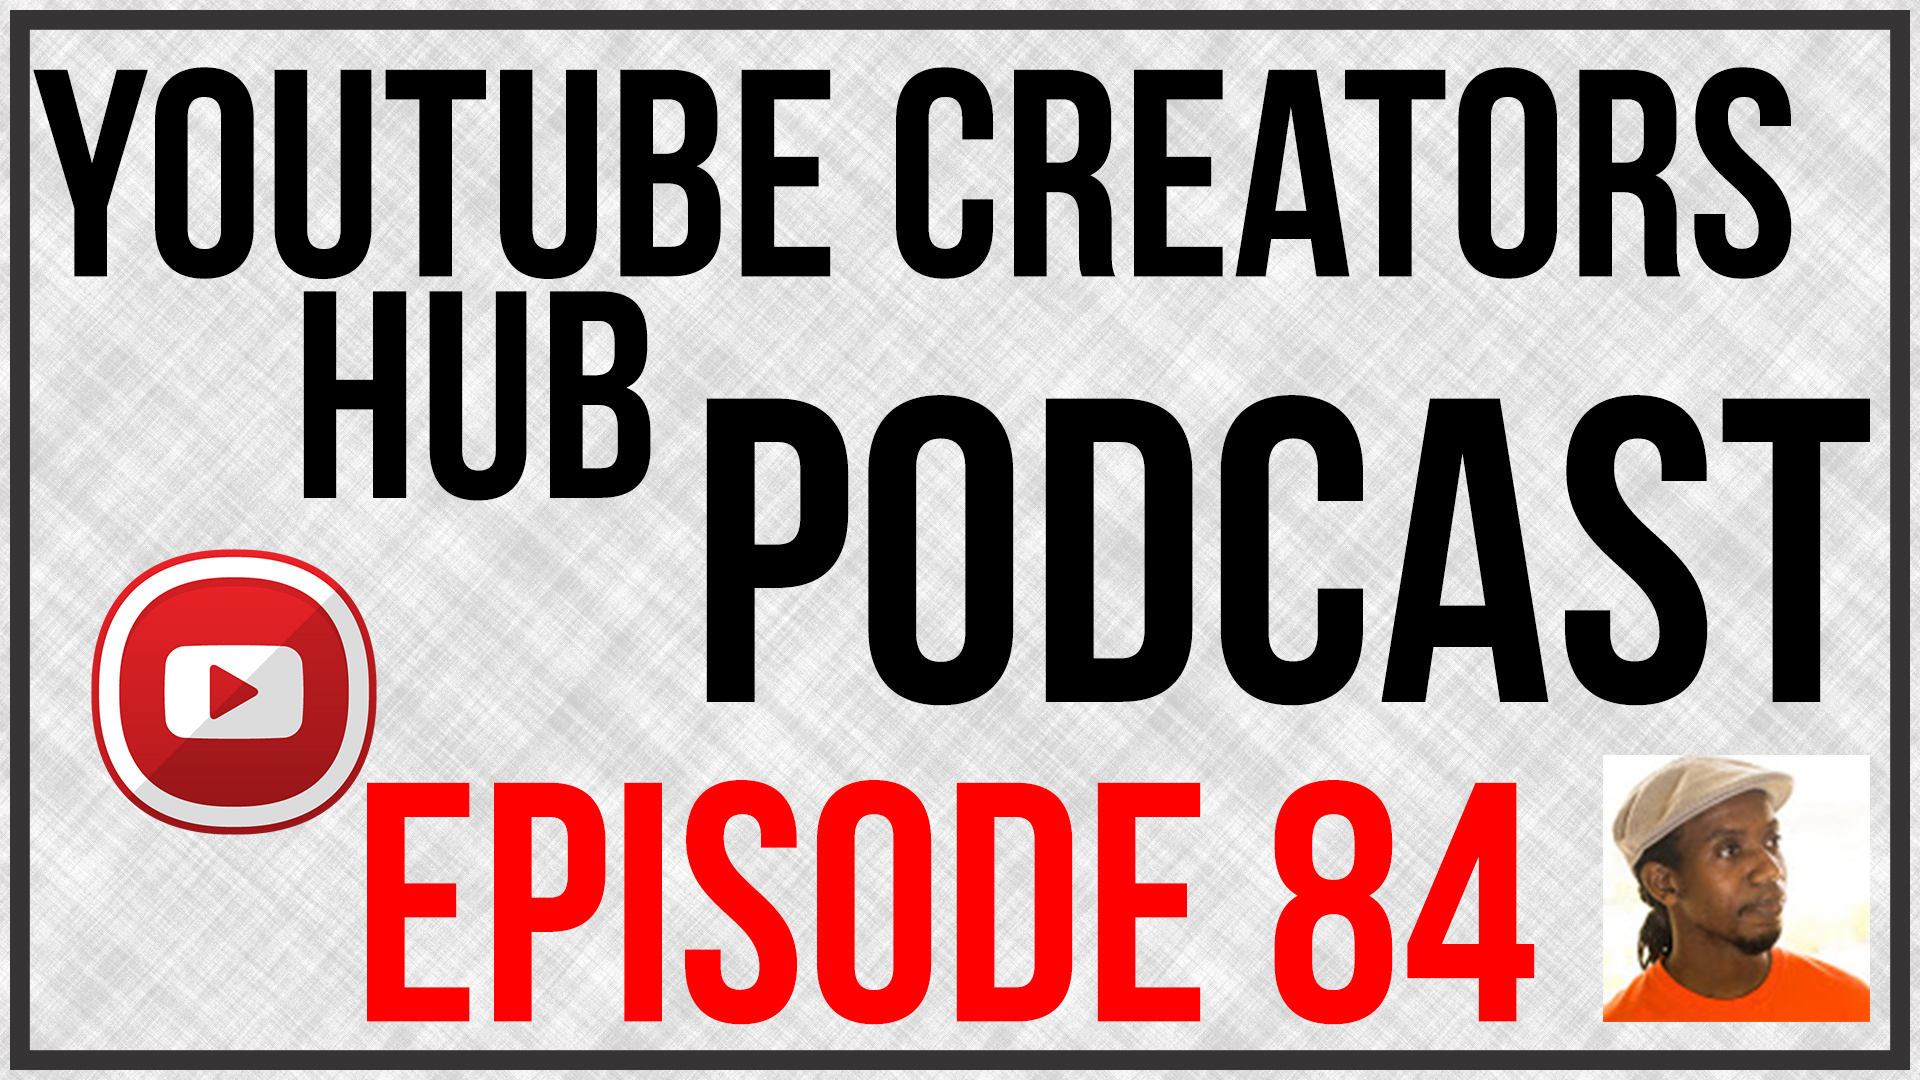 YouTube Creators Hub Podcast Episode 84